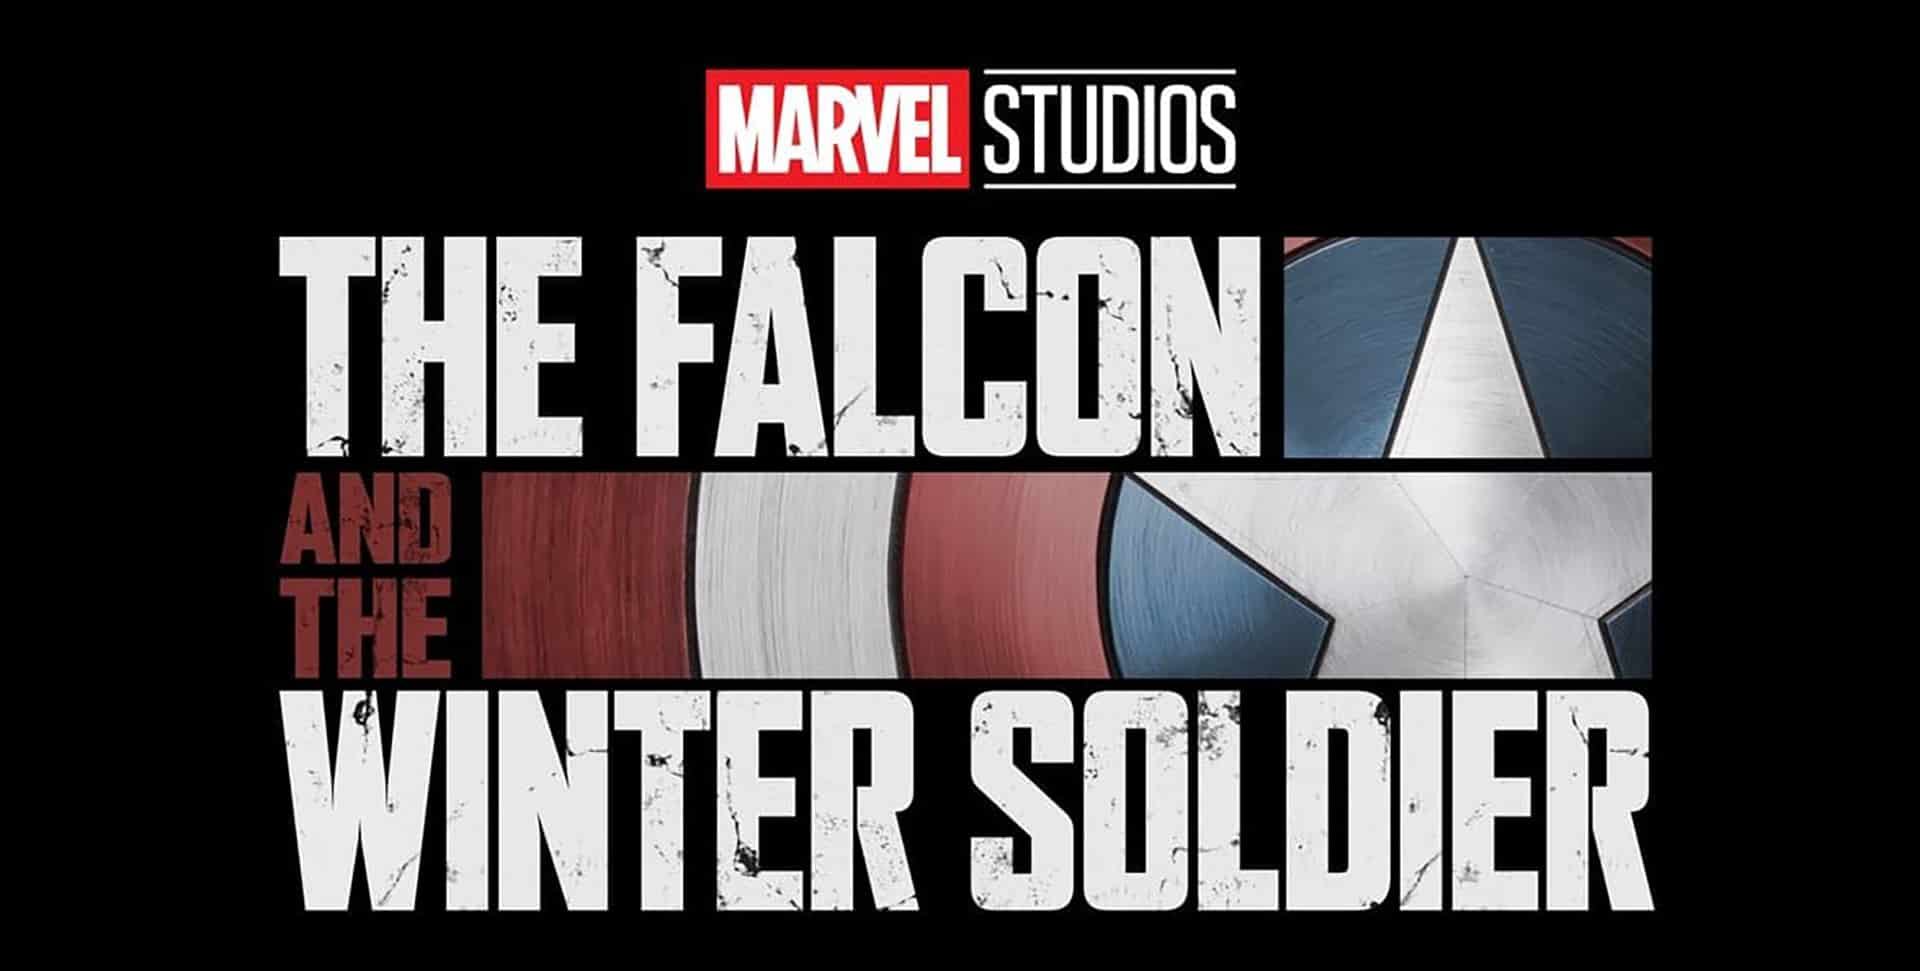 WandaVision Falcon Winter Soldier